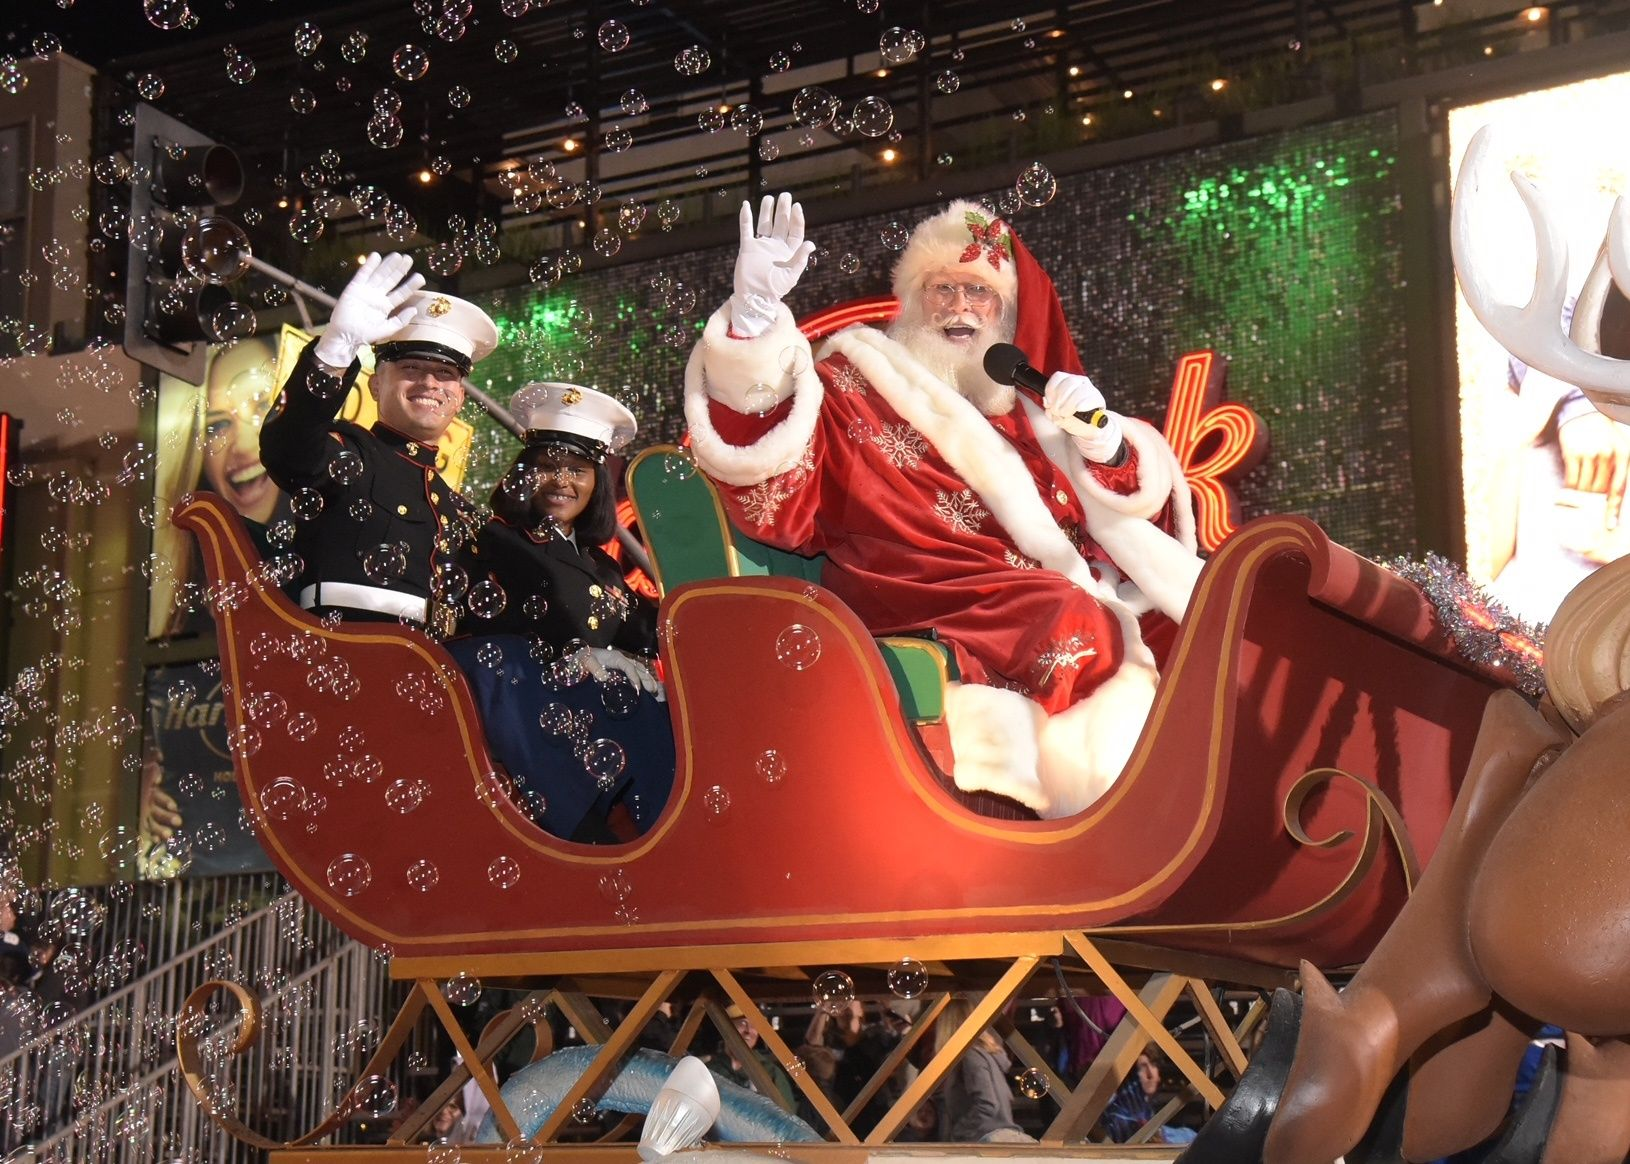 \u200bSanta Claus and service members wave from the sleigh